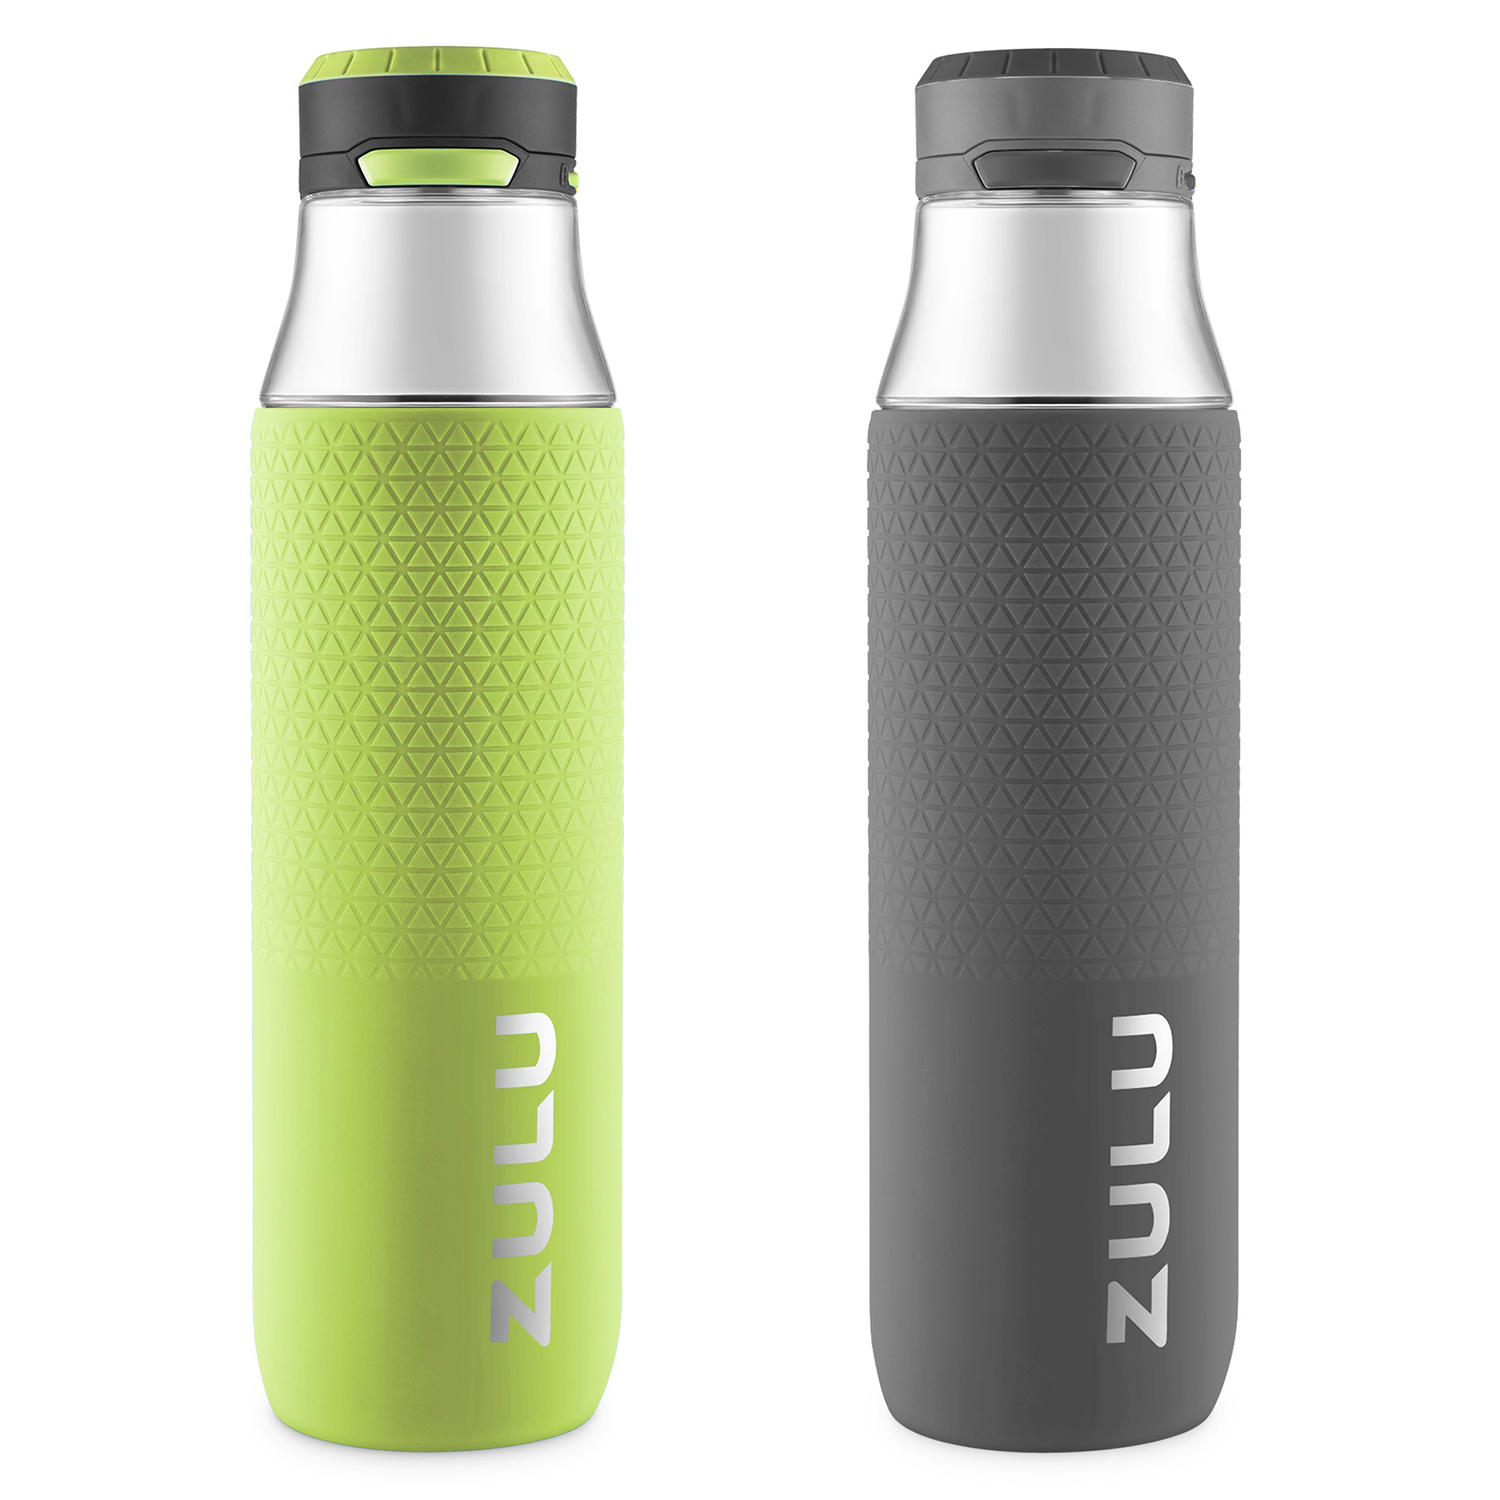 2-Pack Zulu 32 oz. Studio Chug Tritan Water Bottles